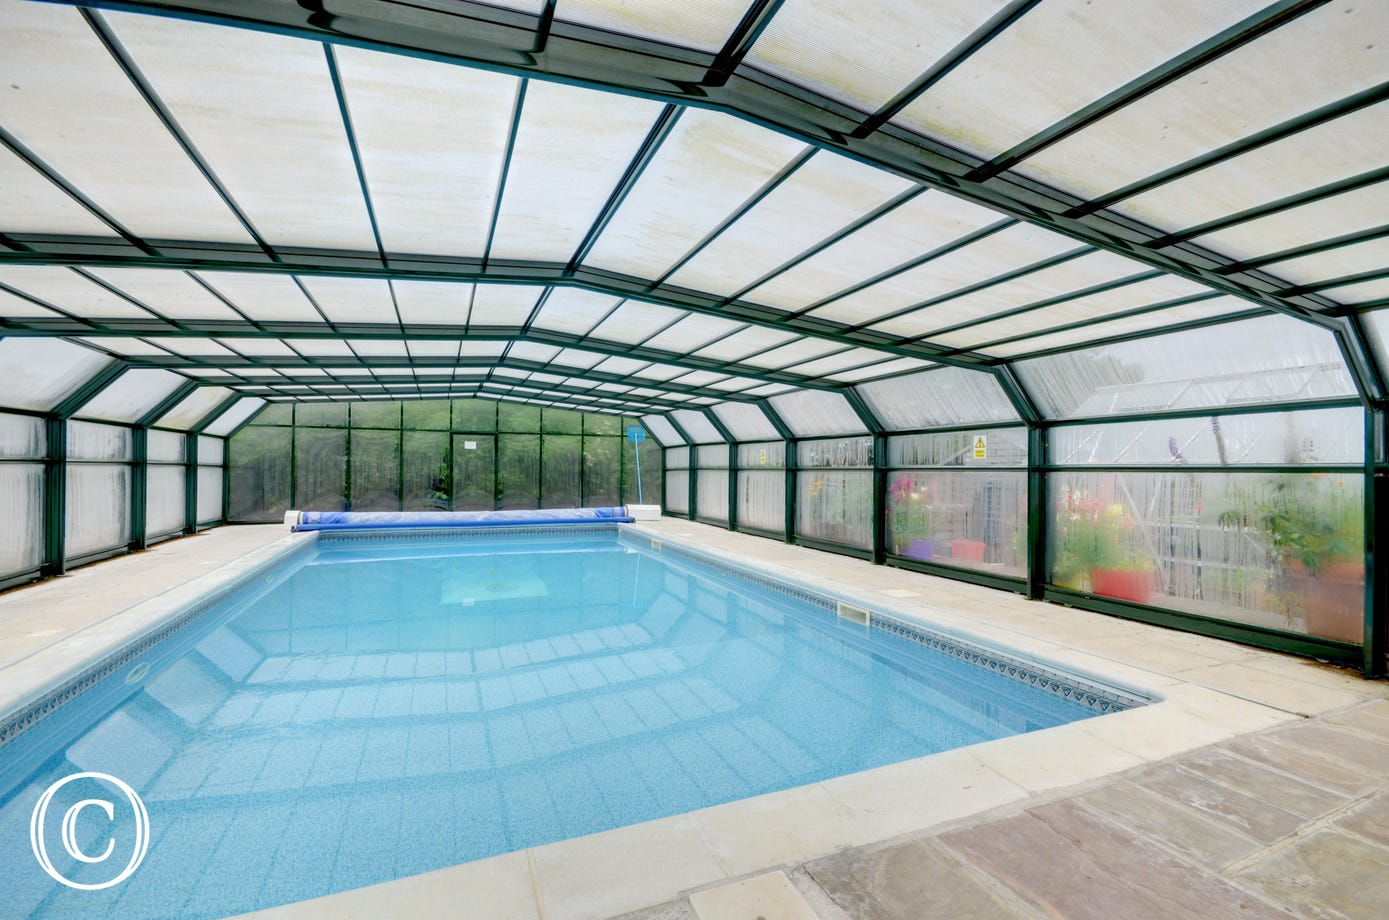 Visitors have shared use of a large indoor heated swimming pool